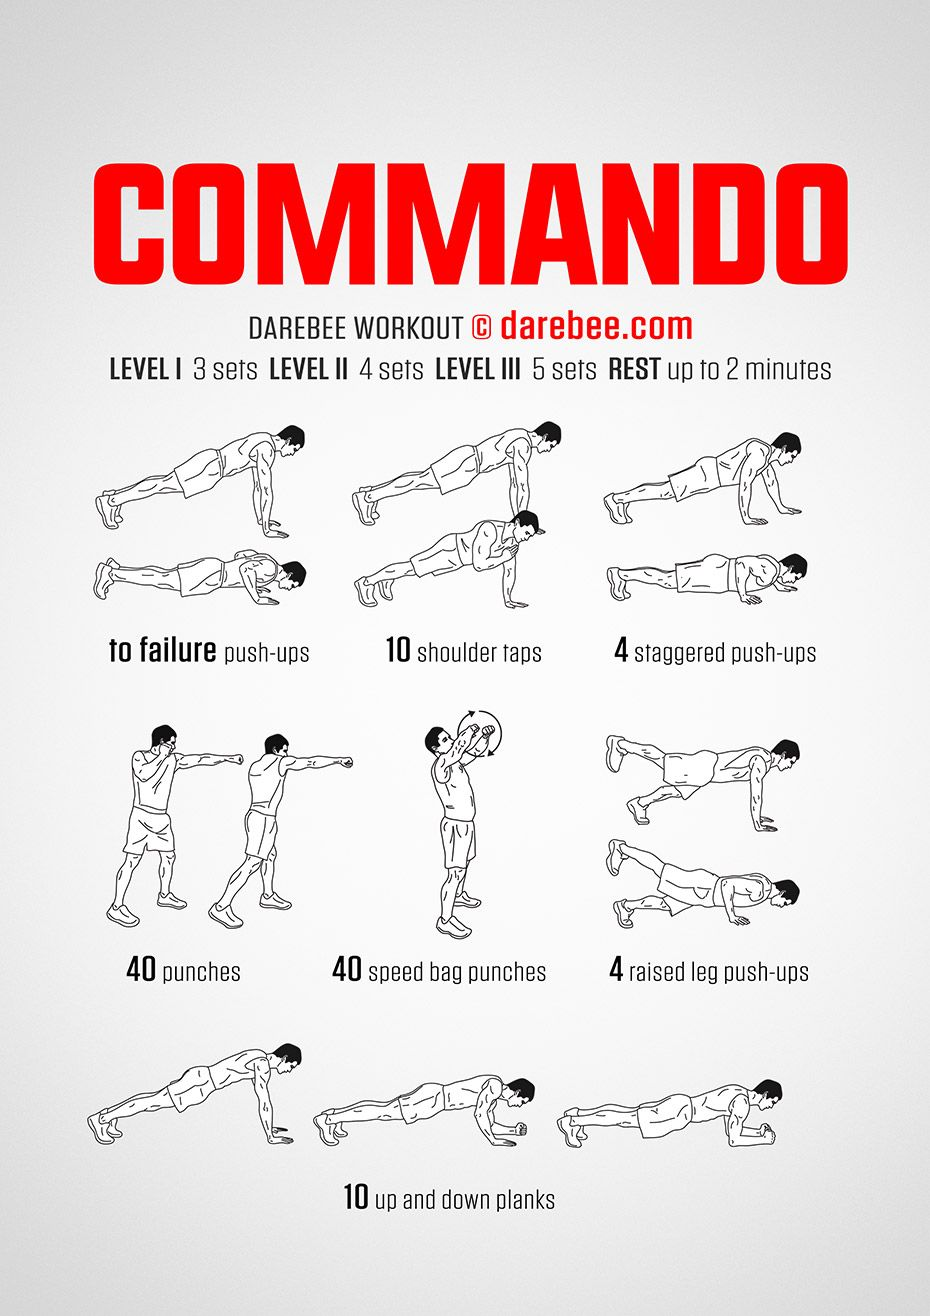 Commando Workout   Workout   Military workout, Workout, Special